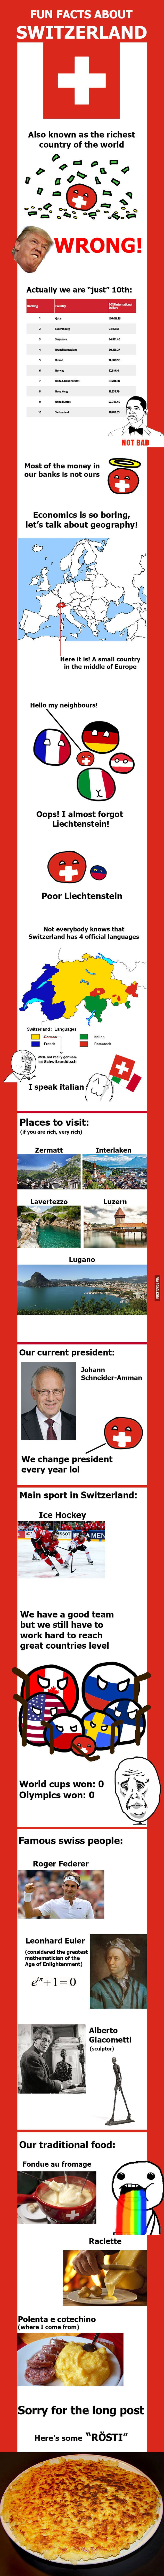 Fun facts about Switzerland